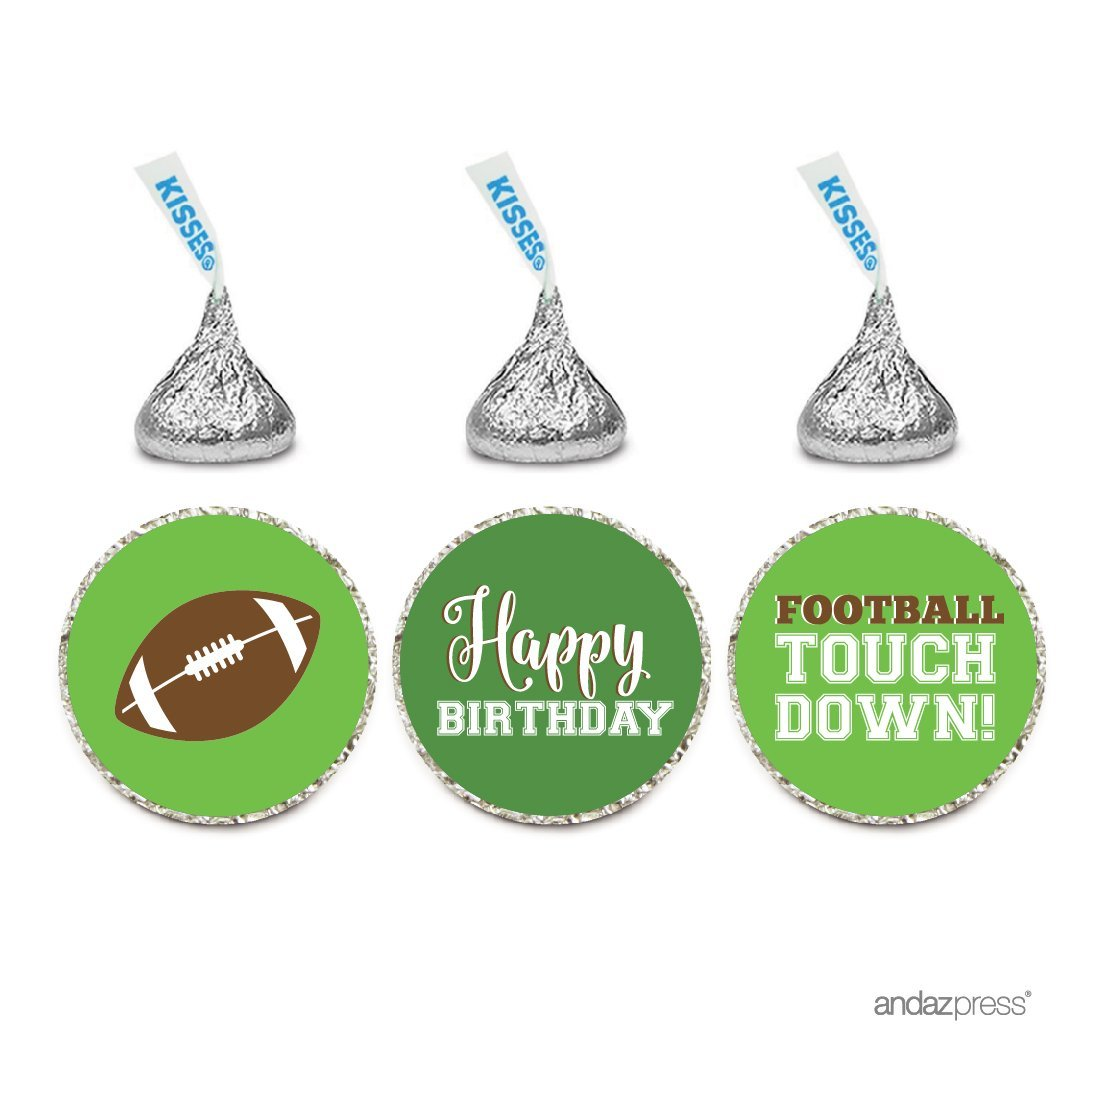 Birthday Chocolate Drop Labels Trio, Fits Hershey's Kisses Party Favors, Football Touchdown! Party, 216-Pack